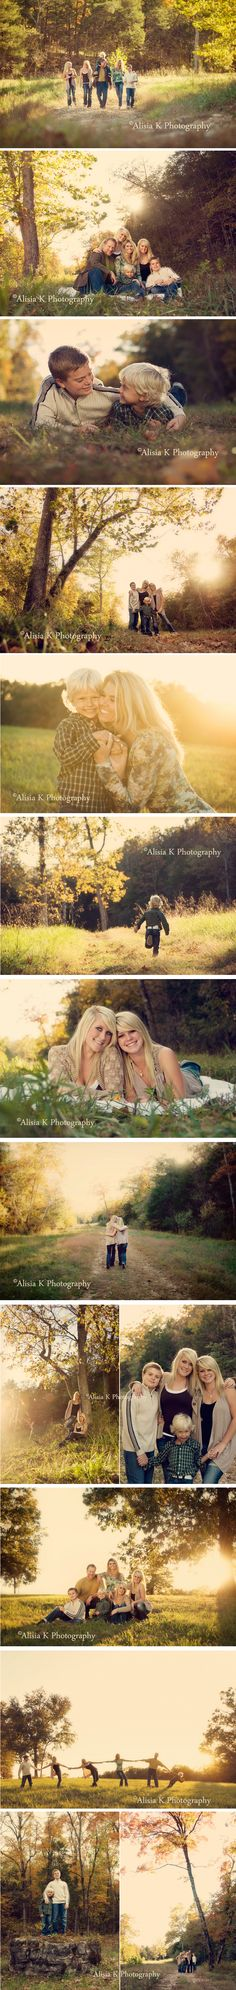 Love this session, family, fall, golden hour